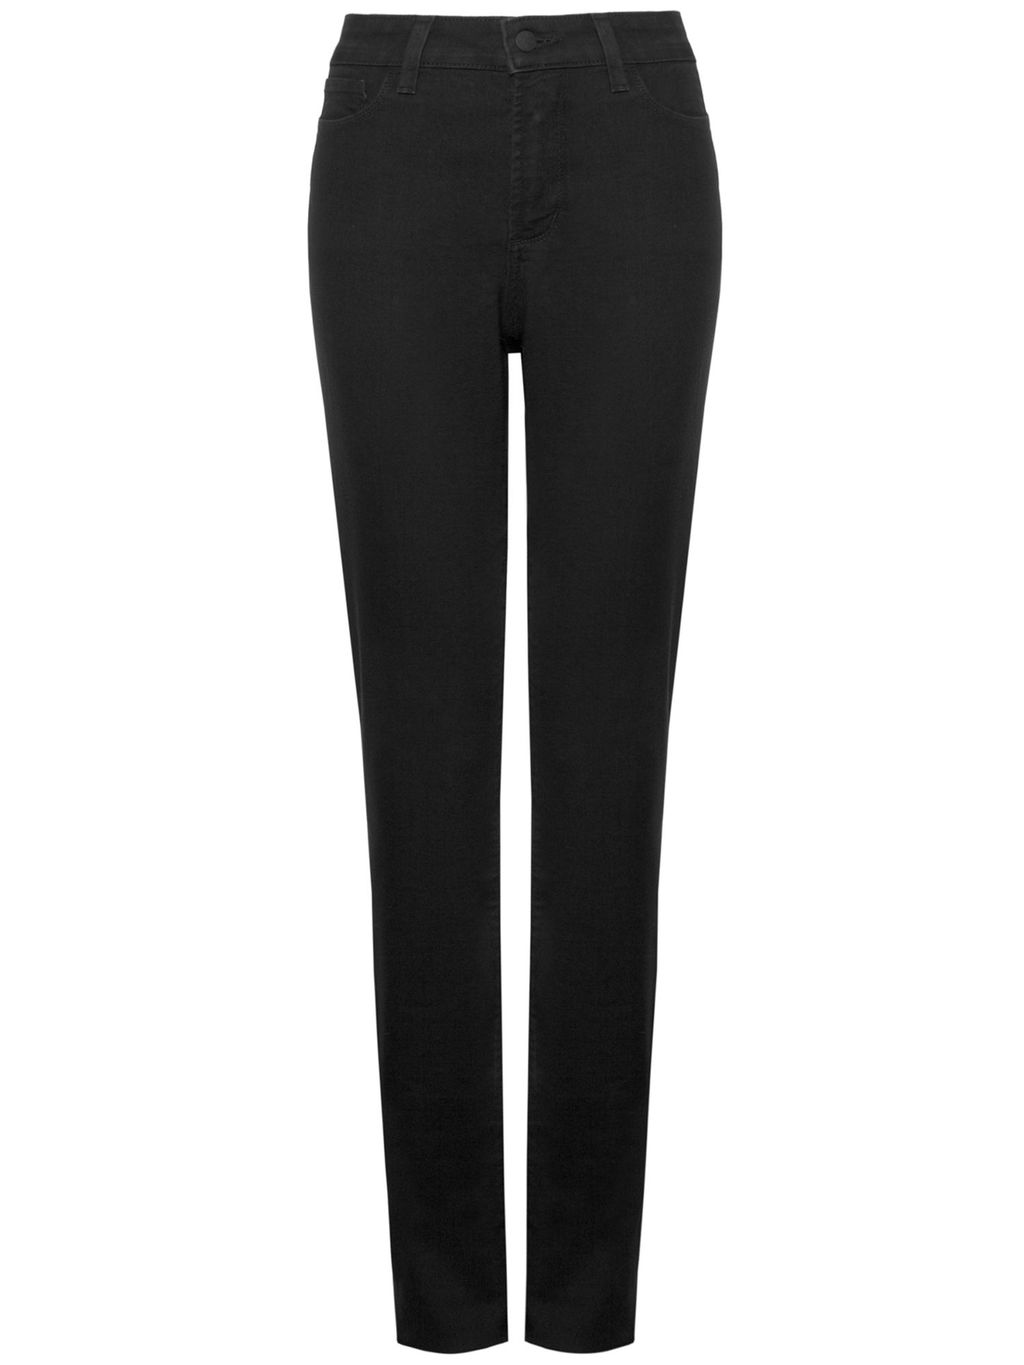 Samantha Slim, Black - length: standard; pattern: plain; waist: mid/regular rise; predominant colour: black; occasions: casual, creative work; fibres: cotton - stretch; fit: slim leg; pattern type: fabric; texture group: woven light midweight; style: standard; pattern size: standard (bottom); season: s/s 2016; wardrobe: basic